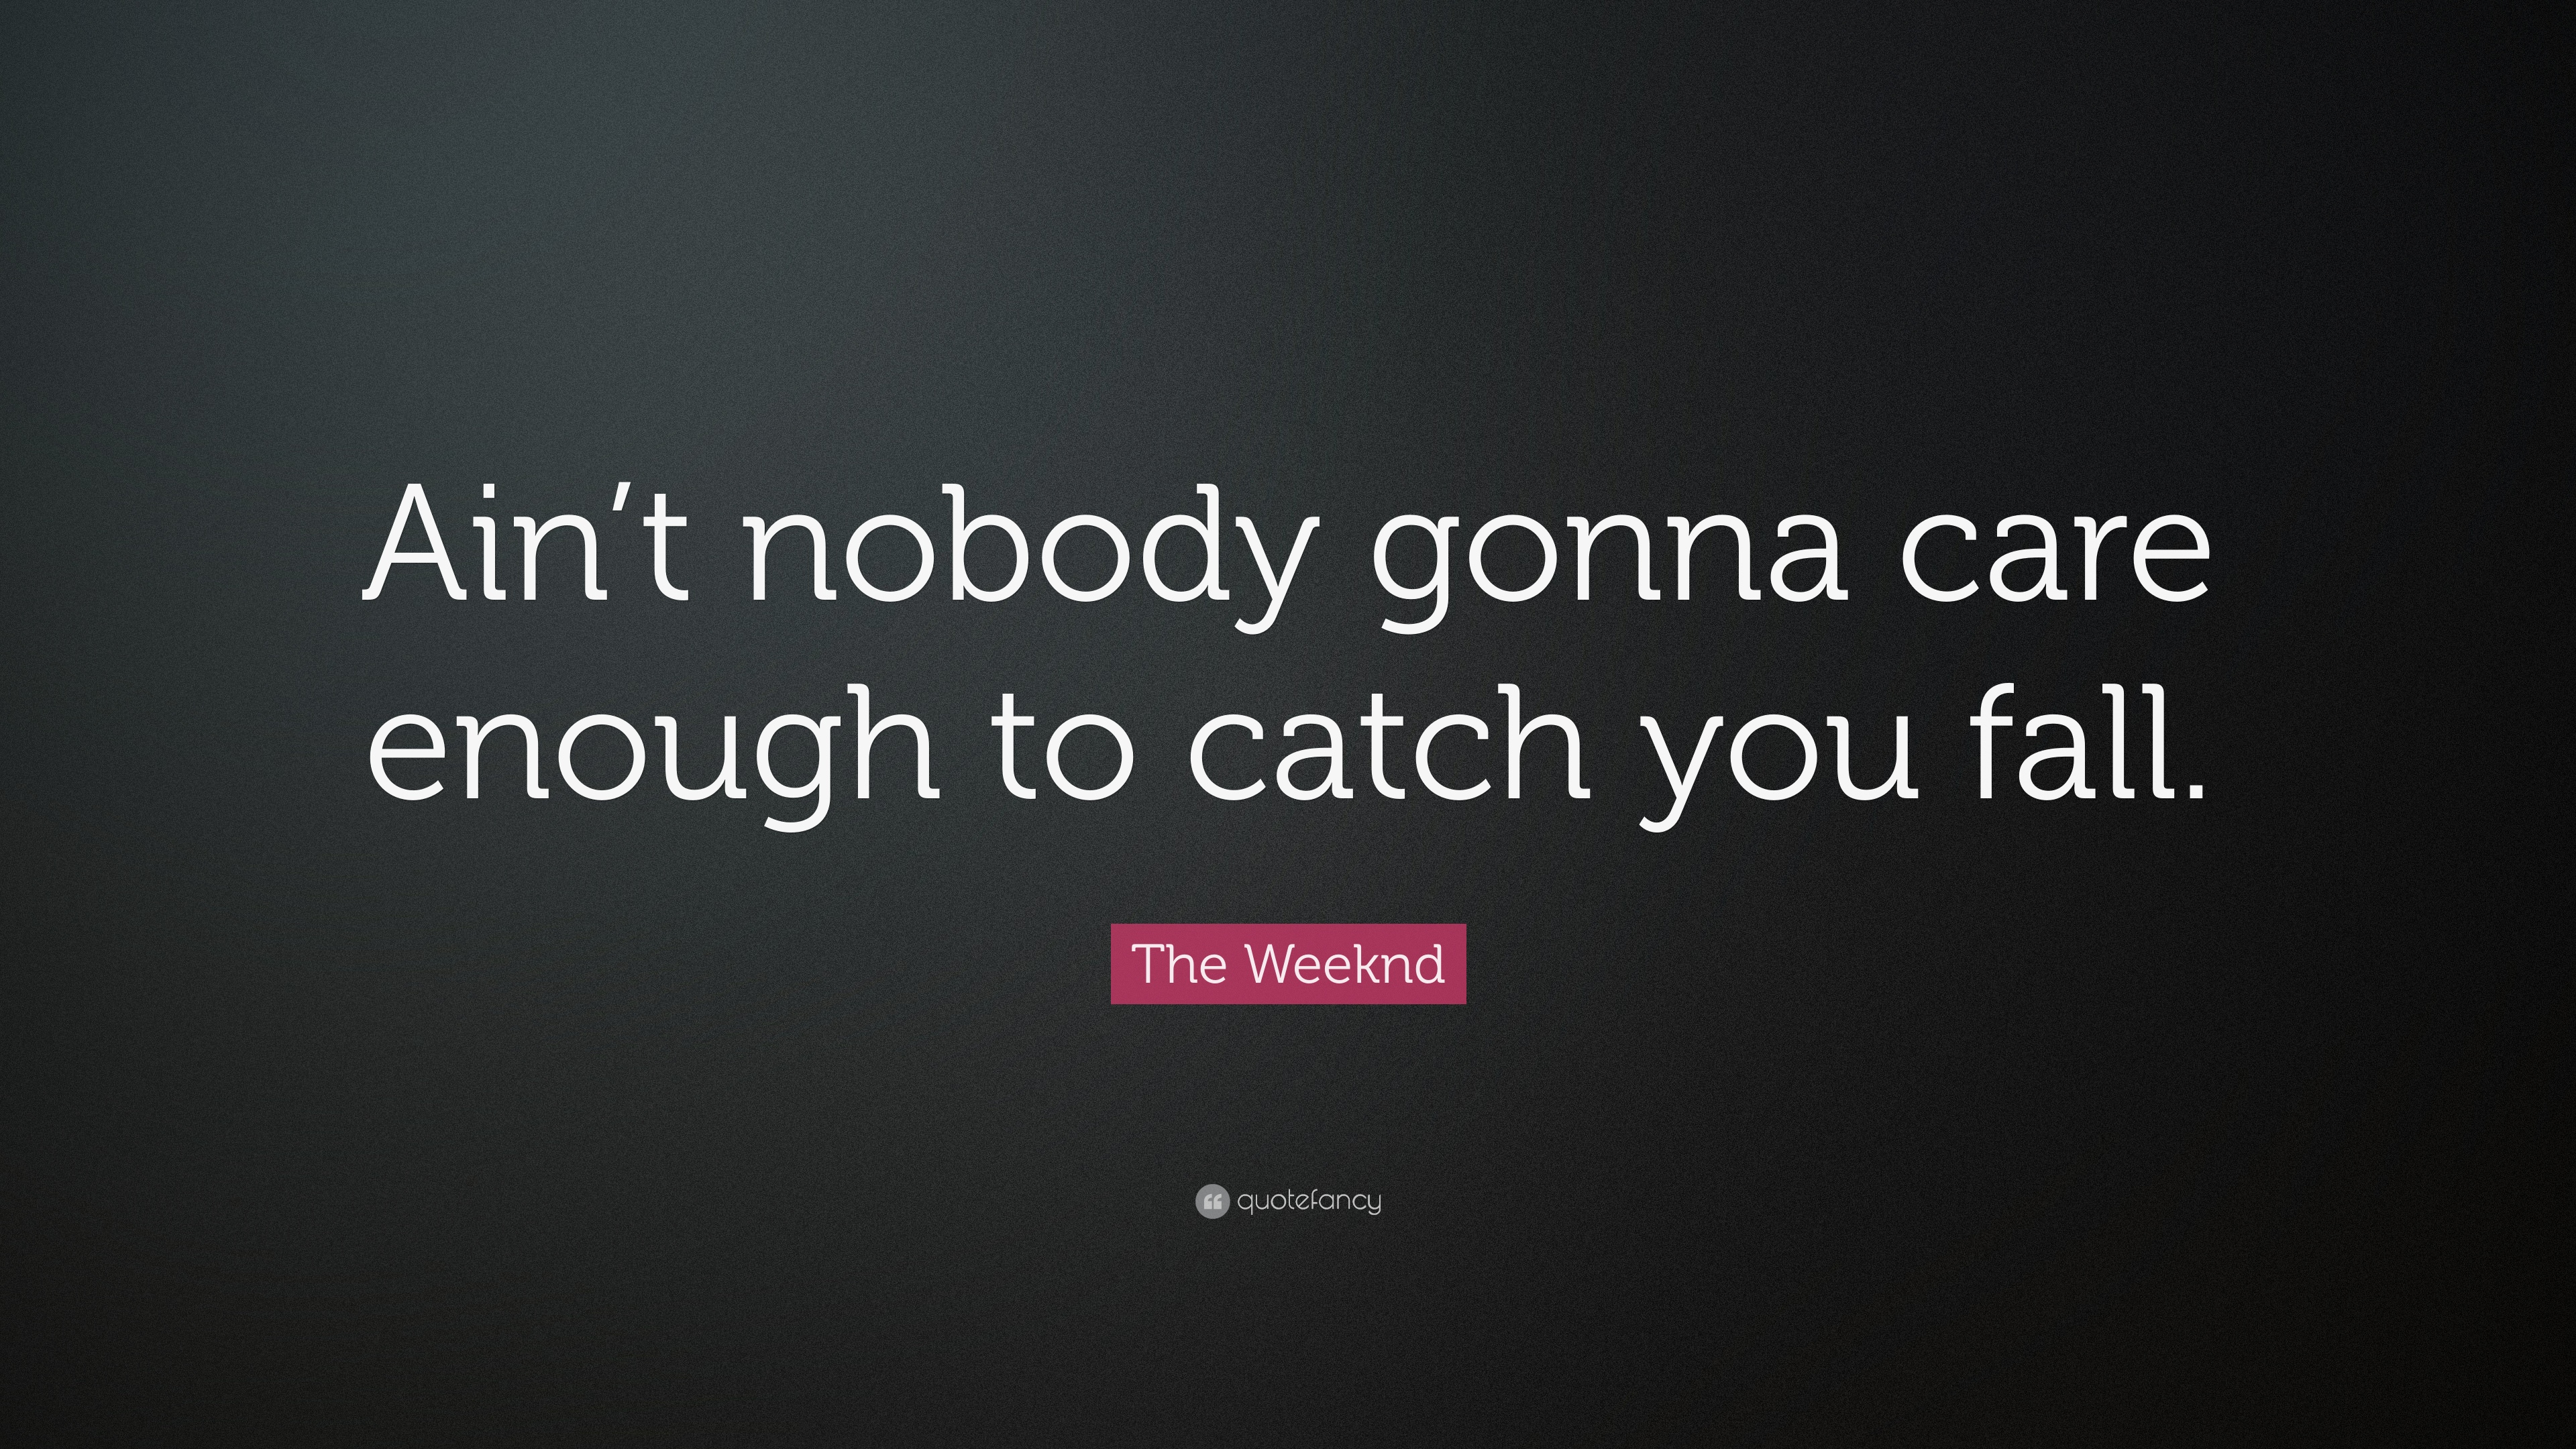 """The Weeknd Quotes The Weeknd Quote: """"Ain't nobody gonna care enough to catch you  The Weeknd Quotes"""